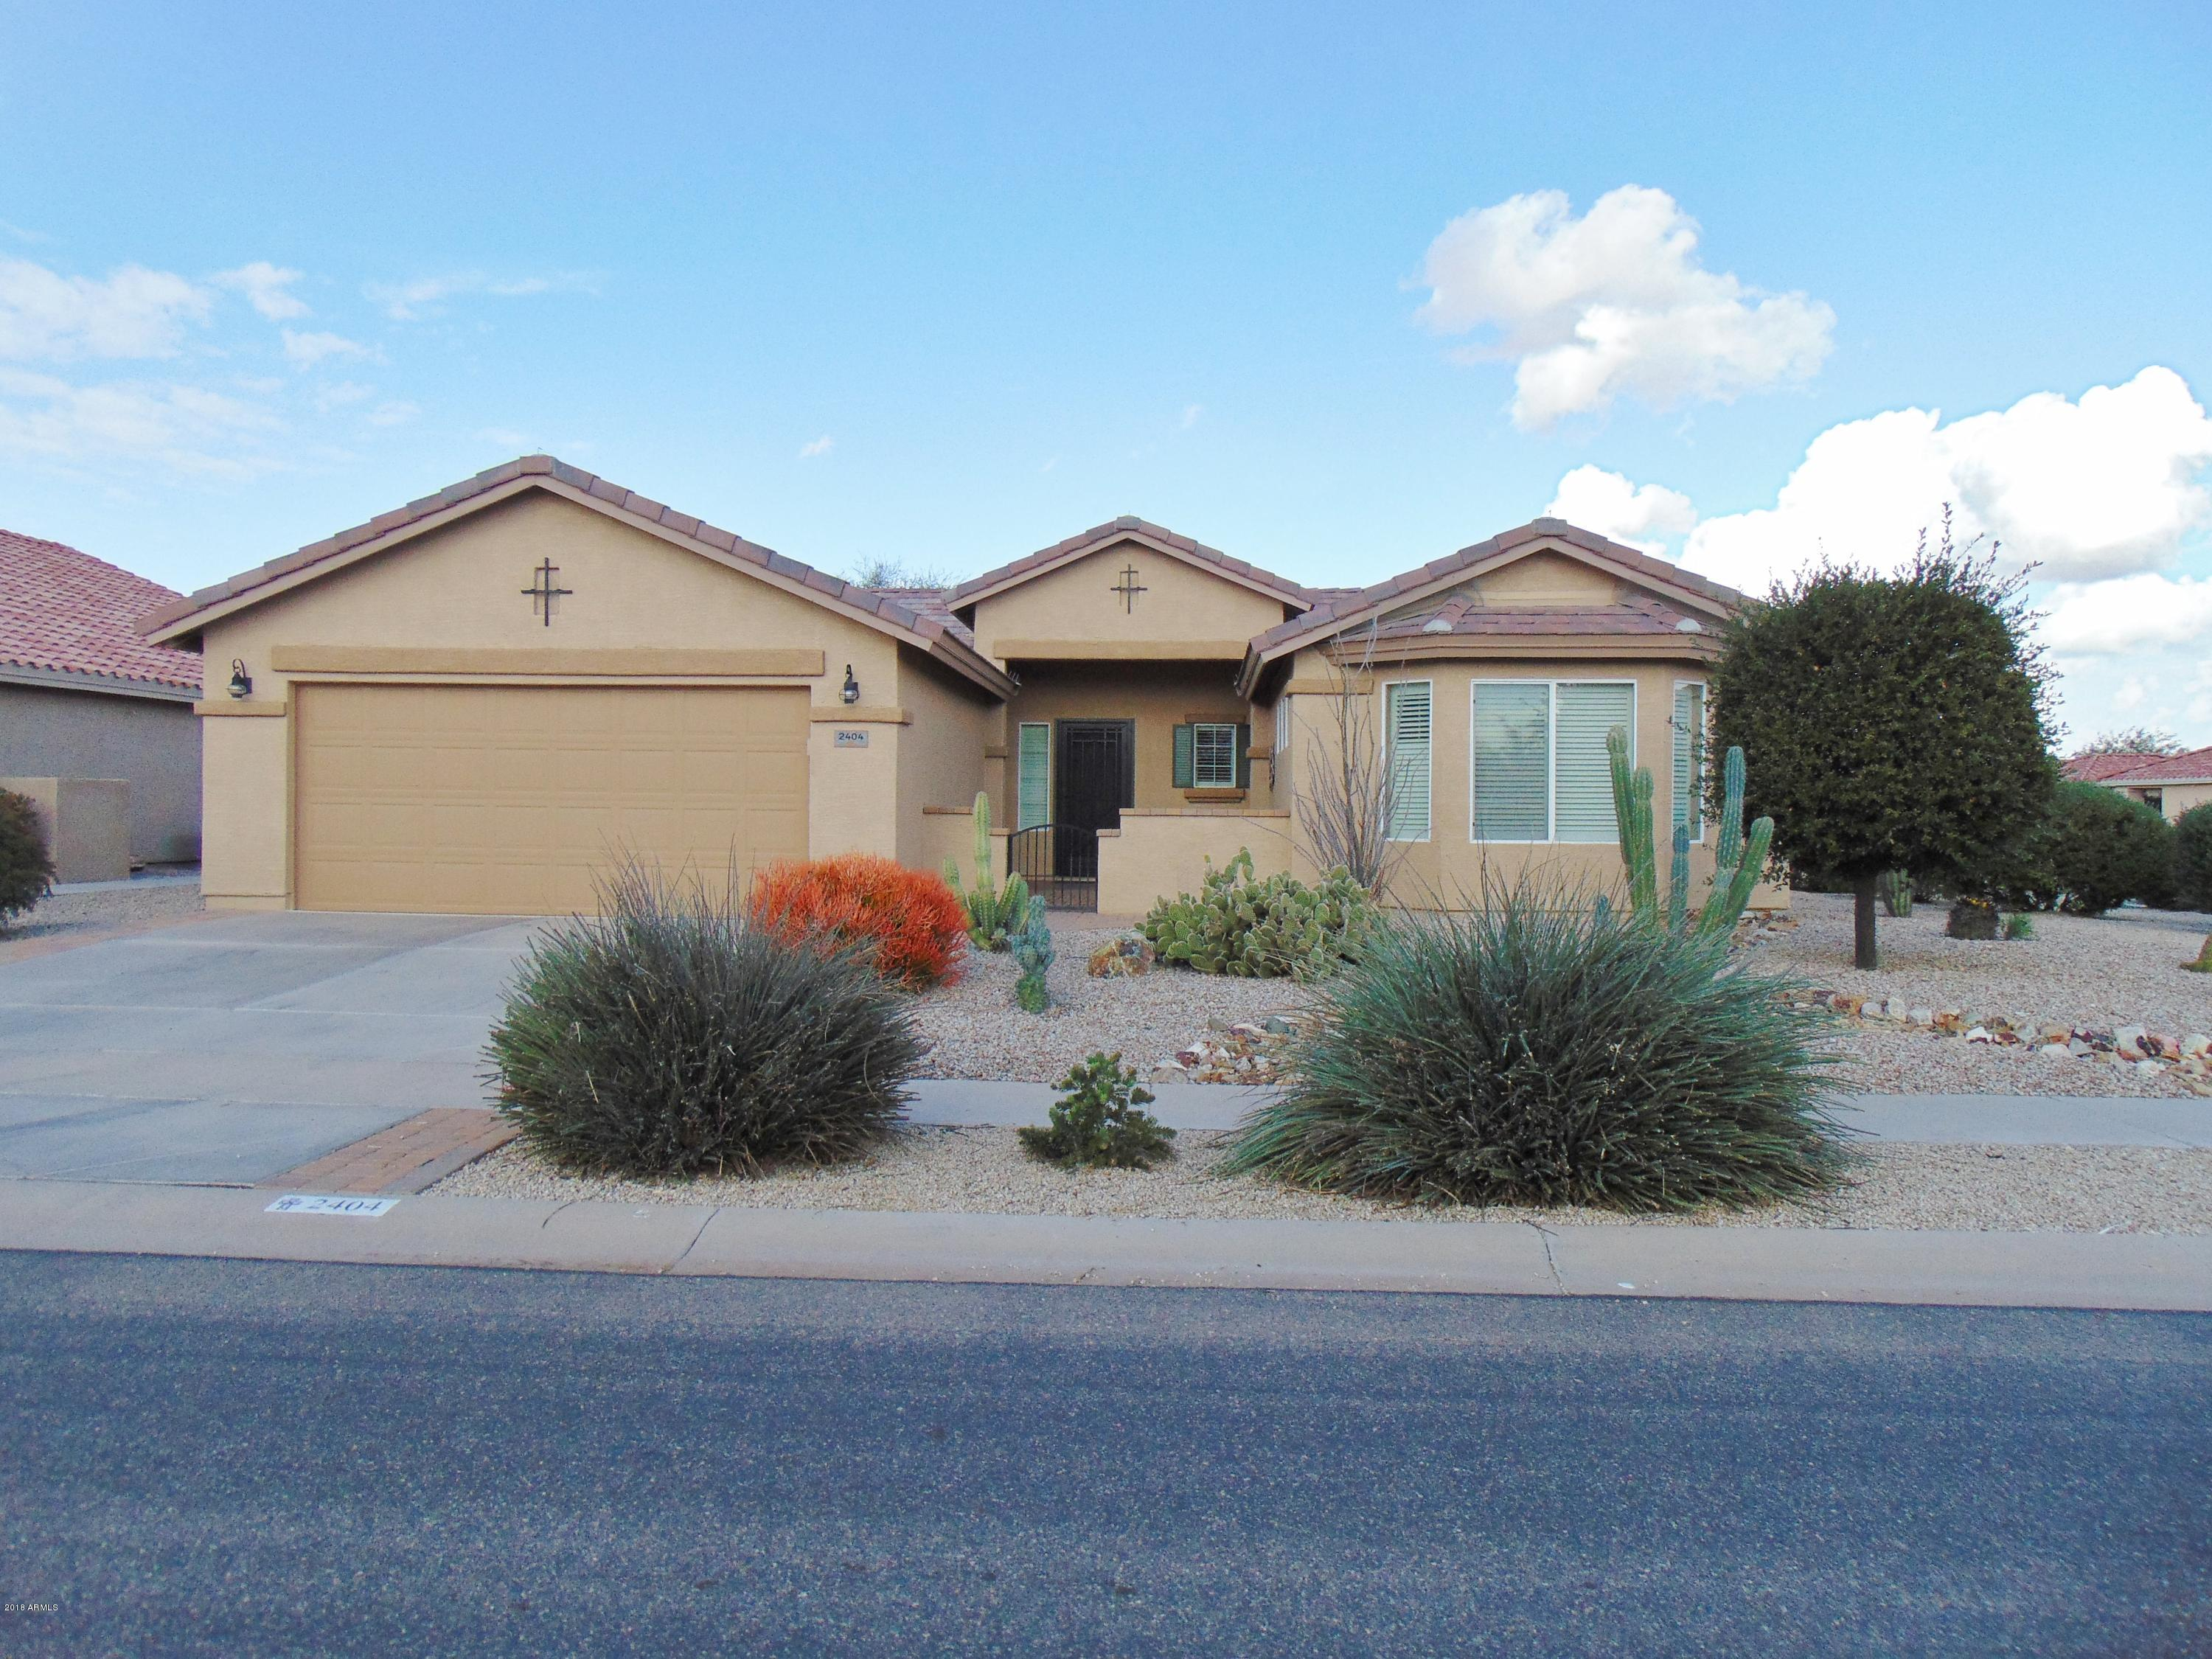 Photo for 2404 E Fiesta Drive, Casa Grande, AZ 85194 (MLS # 5853423)